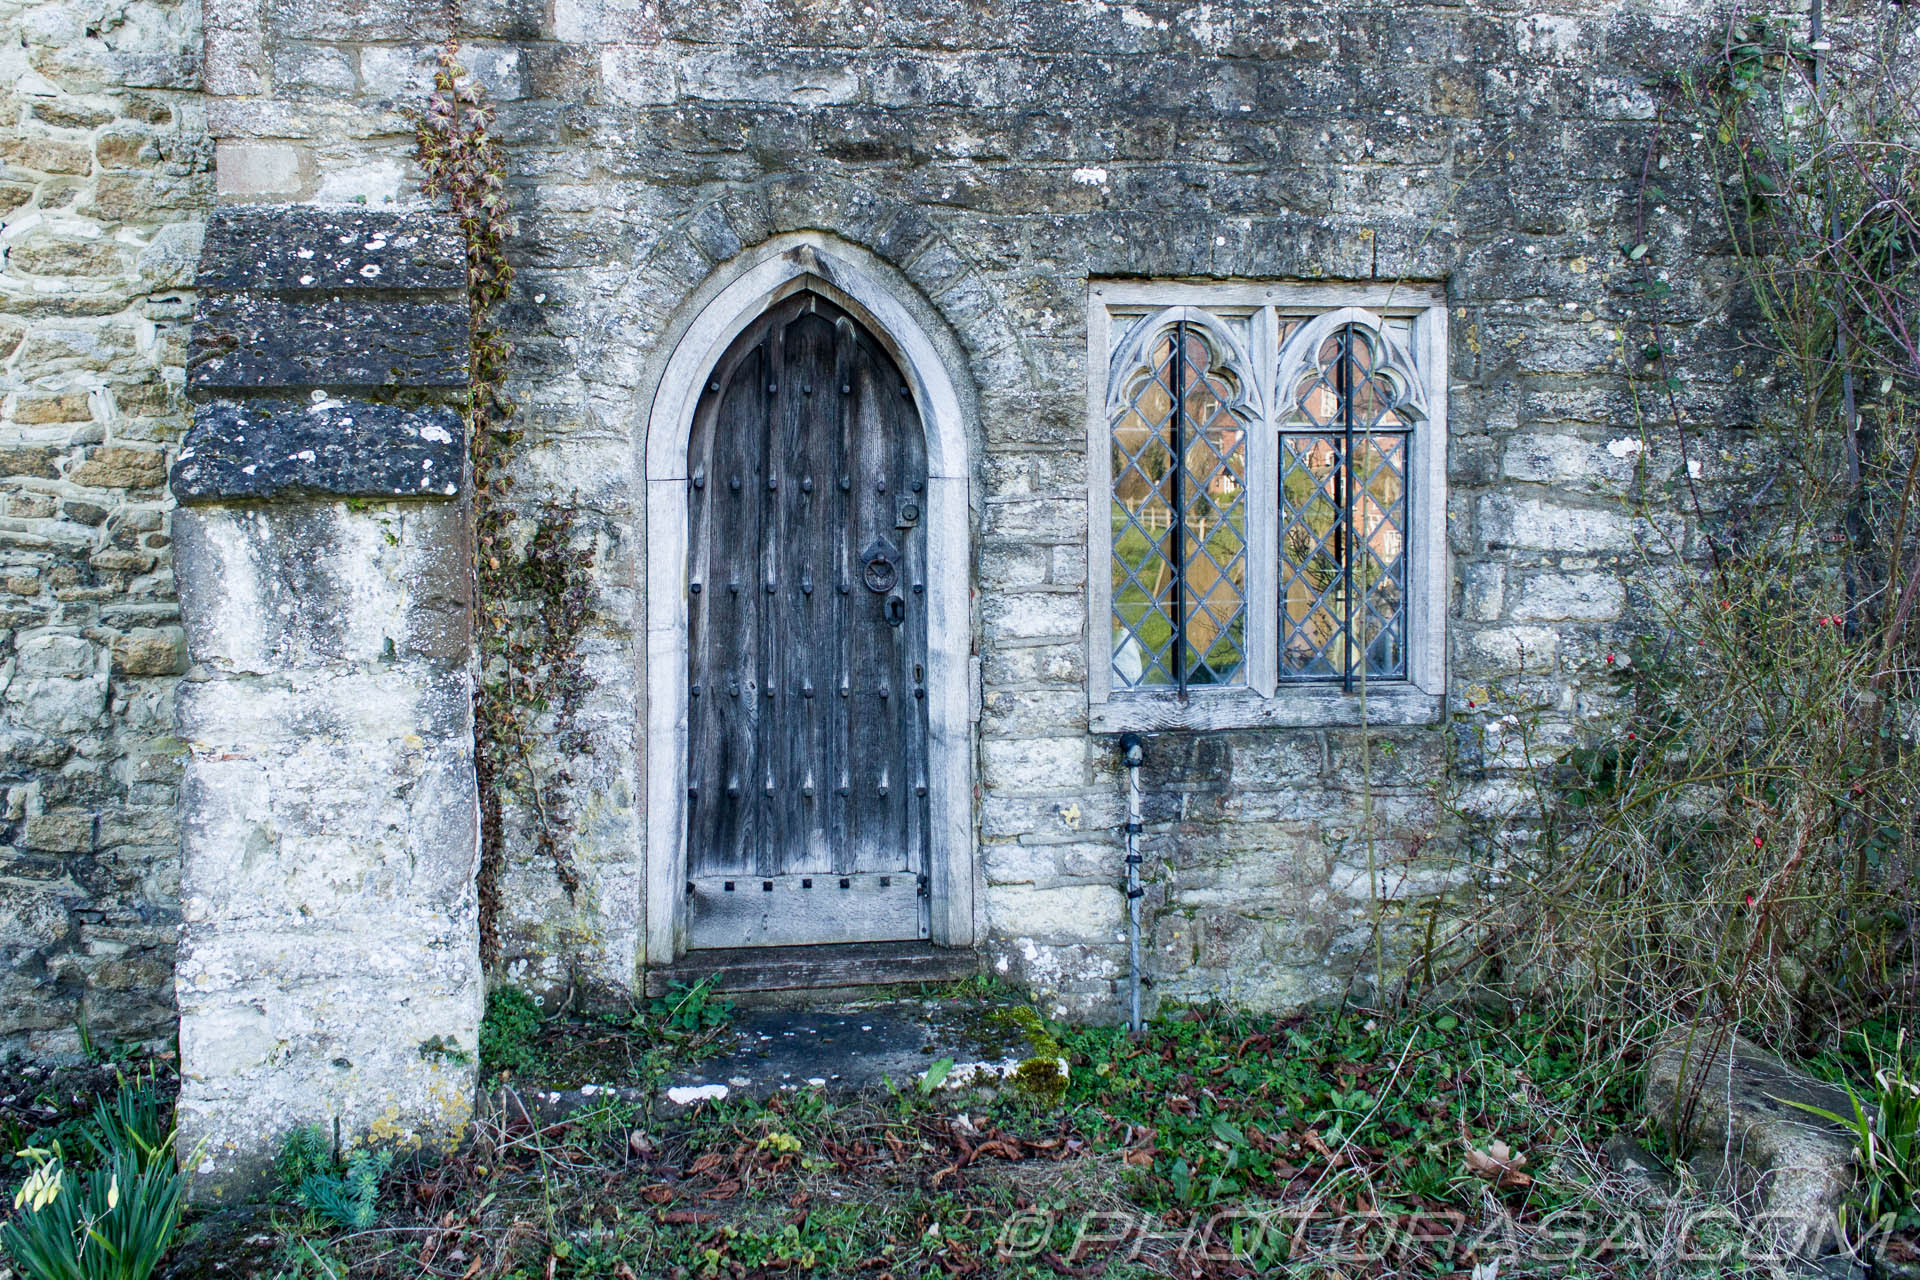 http://photorasa.com/parish-church-st-peter-st-paul-headcorn/old-wooden-arched-side-door/